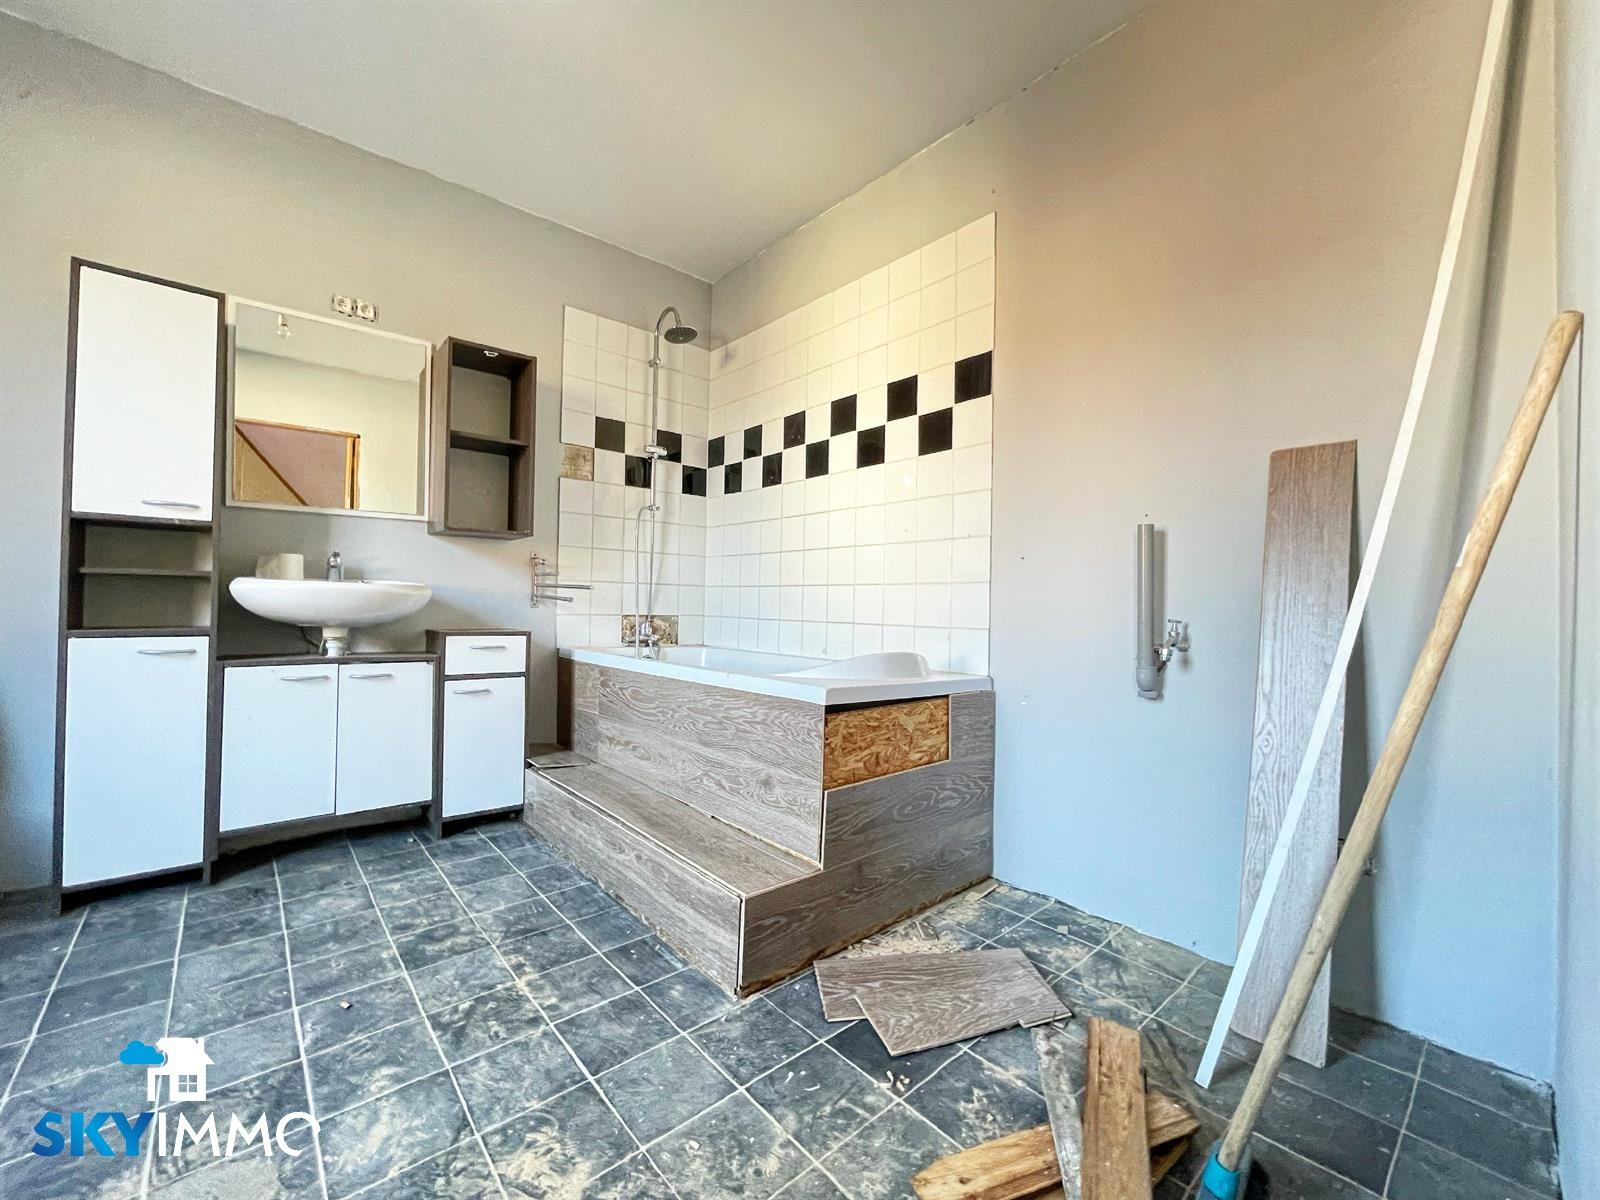 Huis - Flemalle - #4421147-7